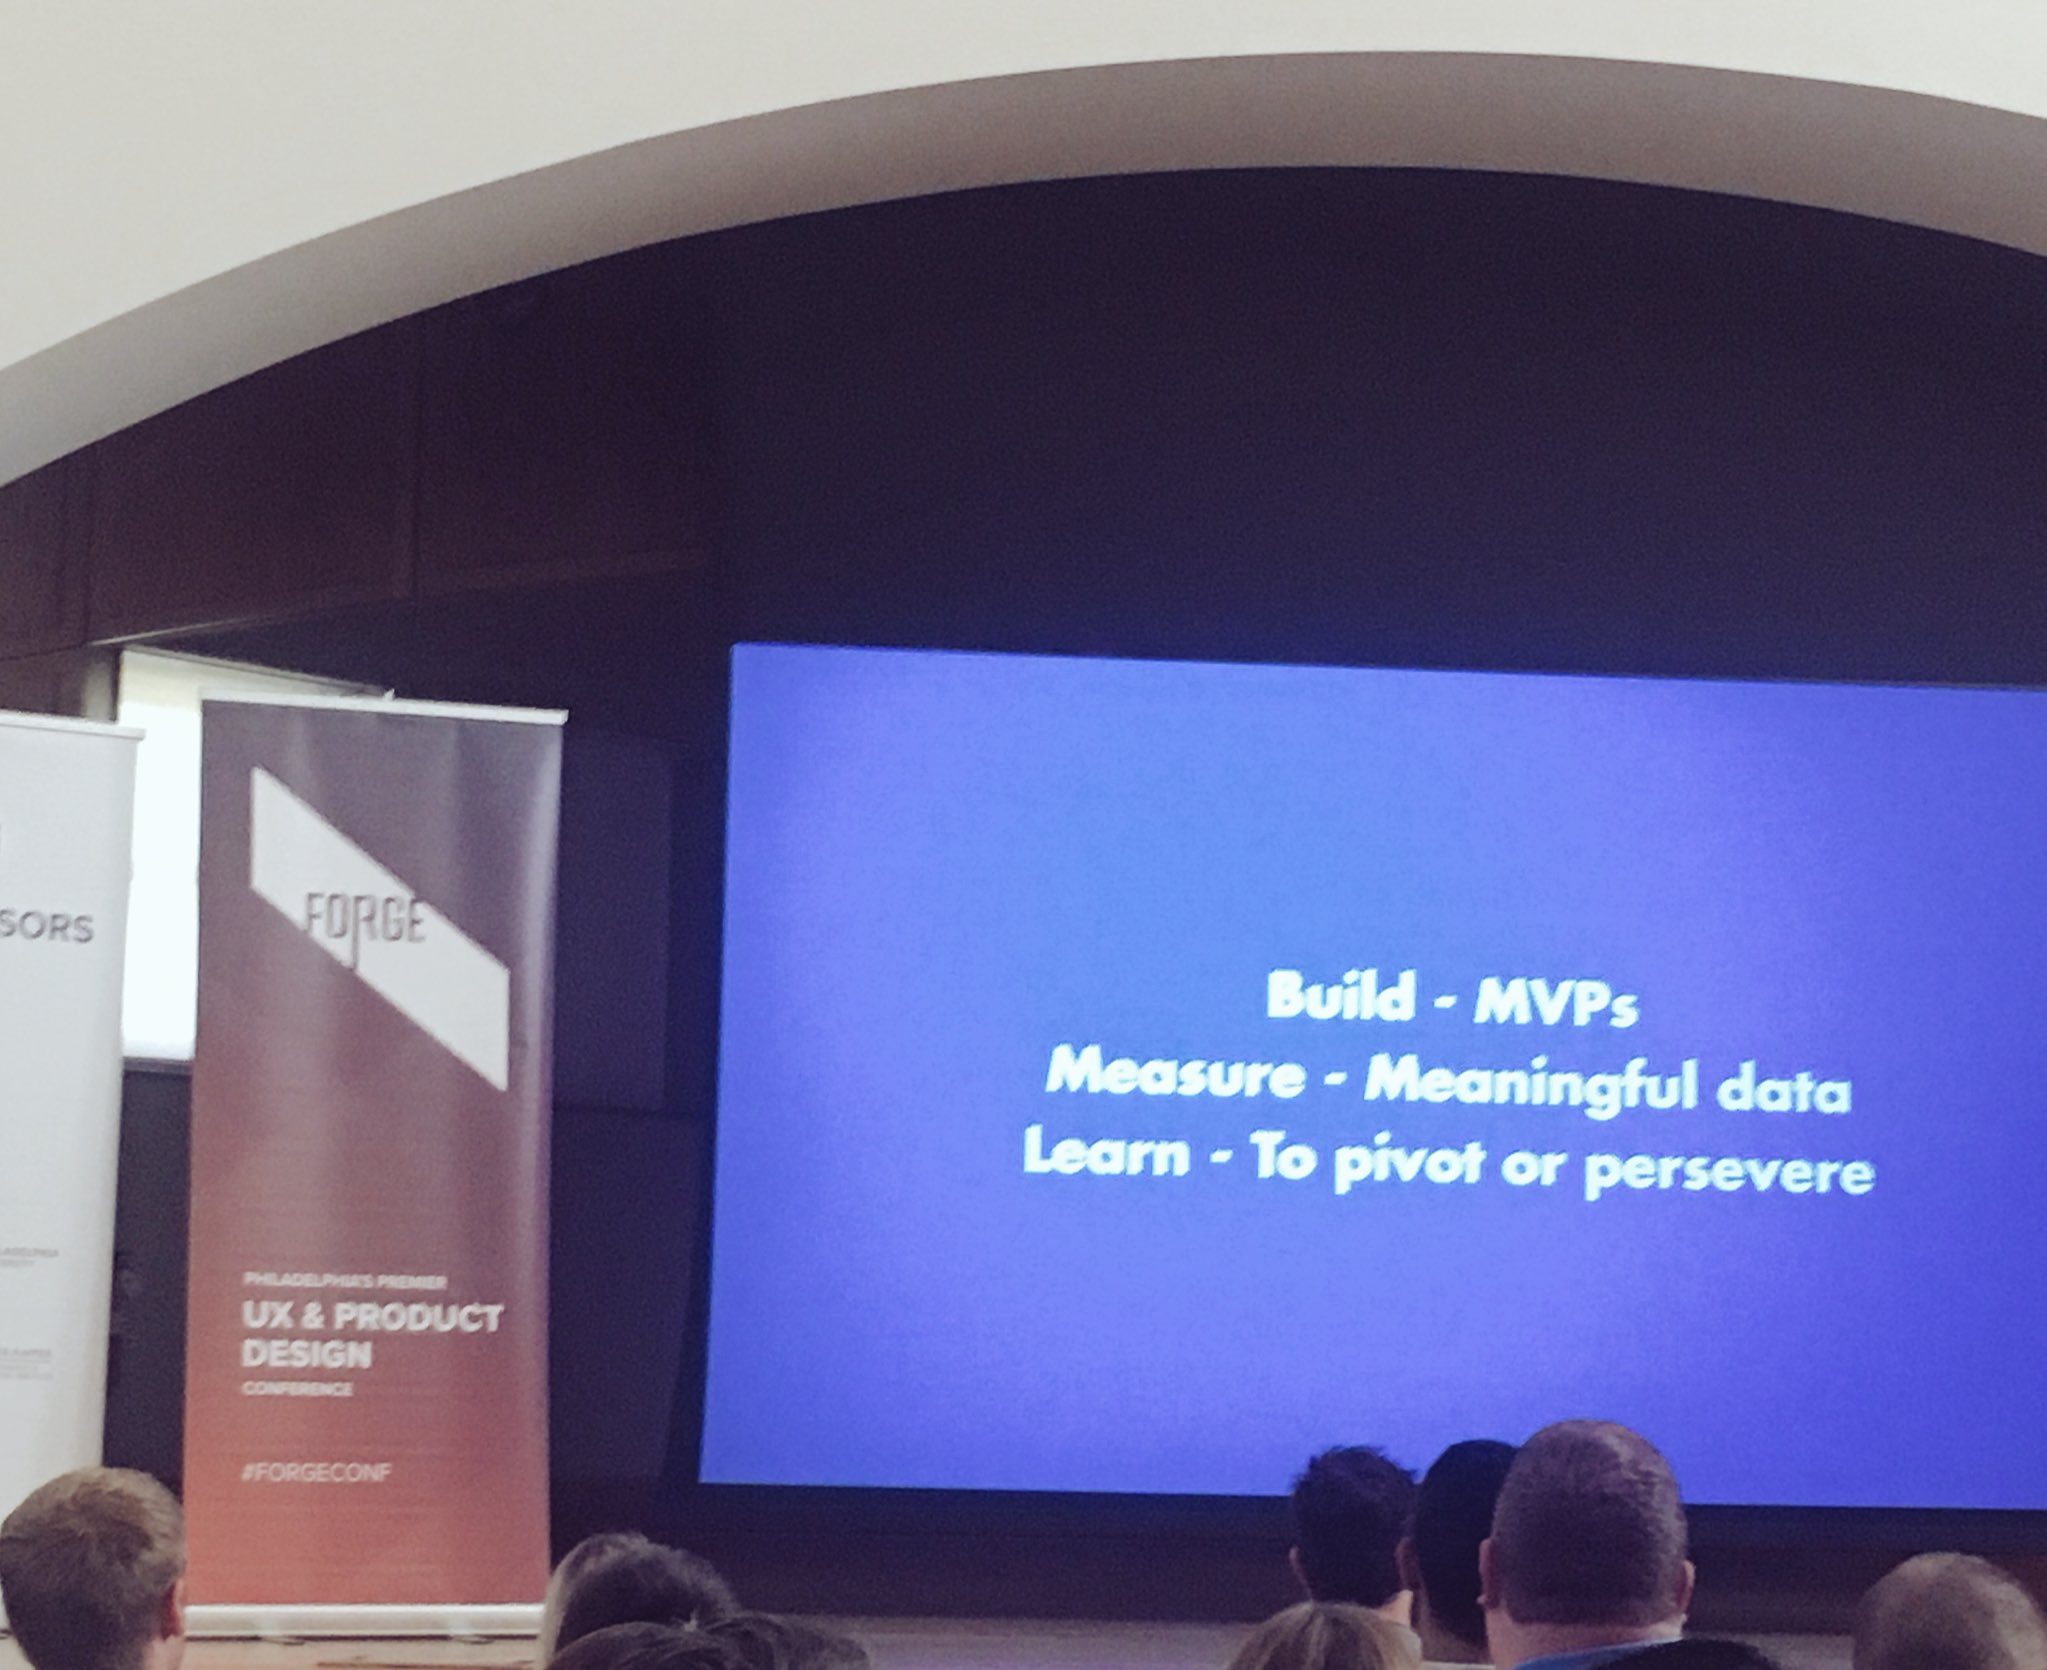 Productive morning here @ForgeConf - Learning about enhancing the MVP mindset #forgeconf https://t.co/iNmz2ZJh76